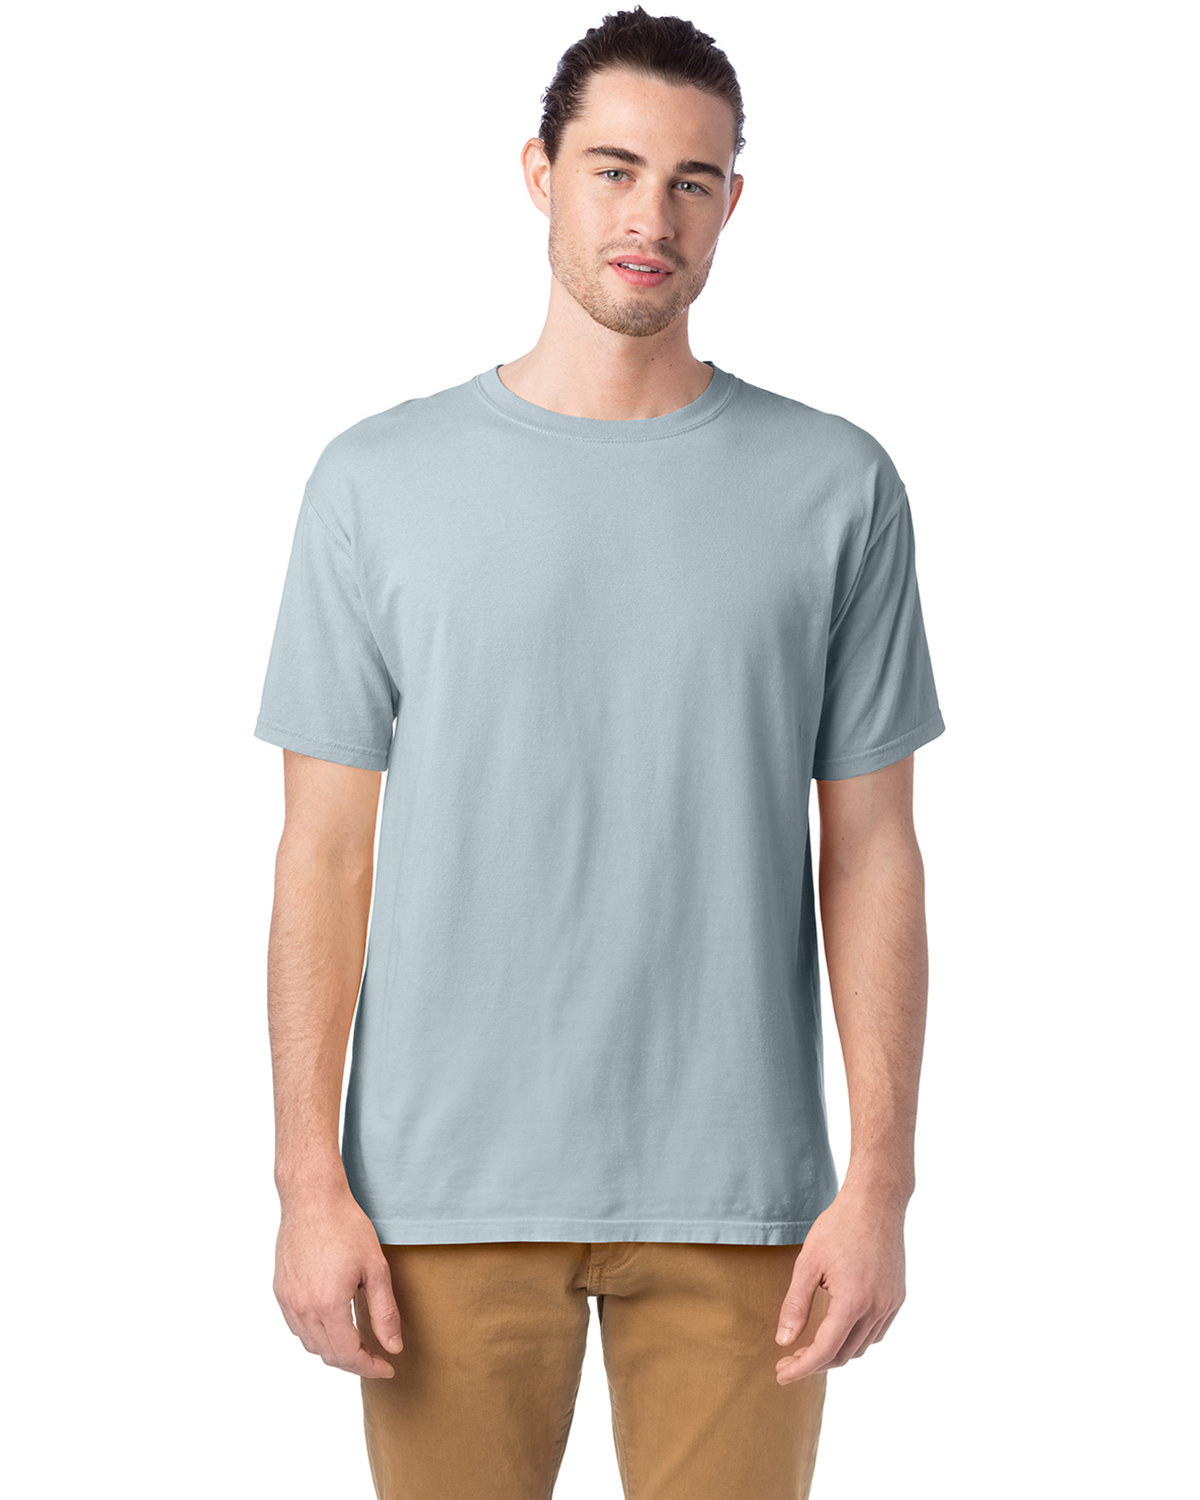 ComfortWash by Hanes Men's 5.5 oz., 100% Ringspun Cotton Garment-Dyed T-Shirt SOOTHING BLUE